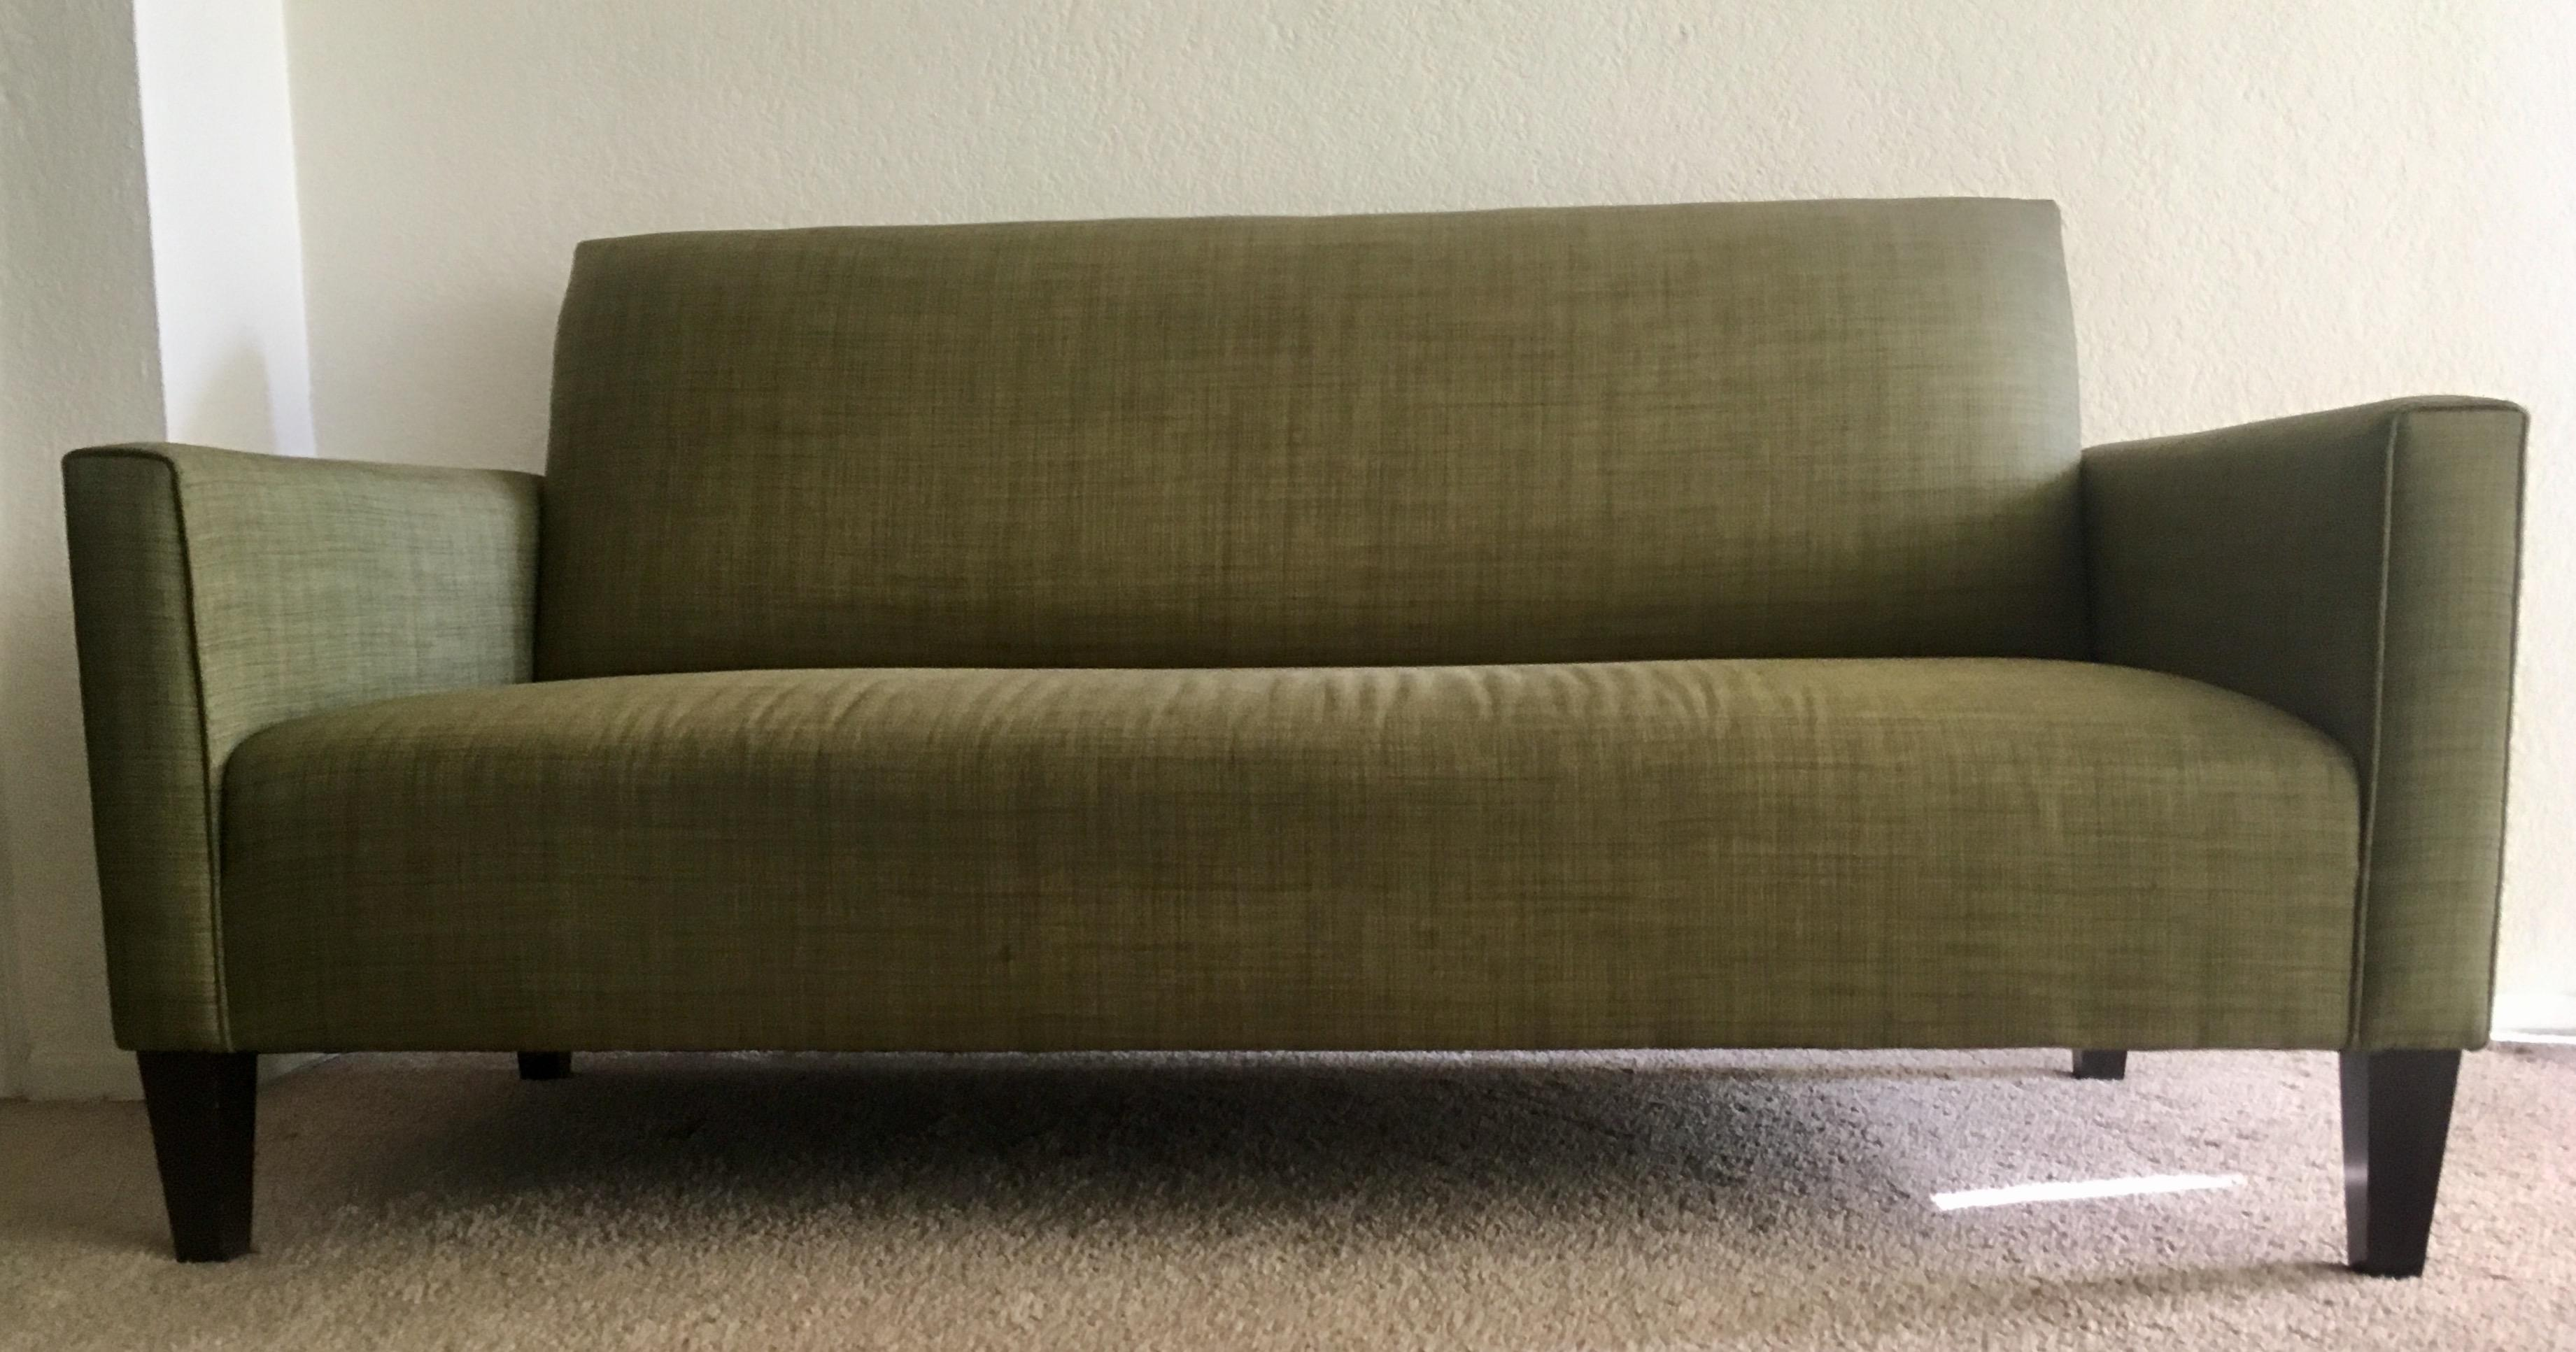 crate  u0026 barrel camden olive sofa   image 2     crate  u0026 barrel camden olive sofa   chairish  rh   chairish